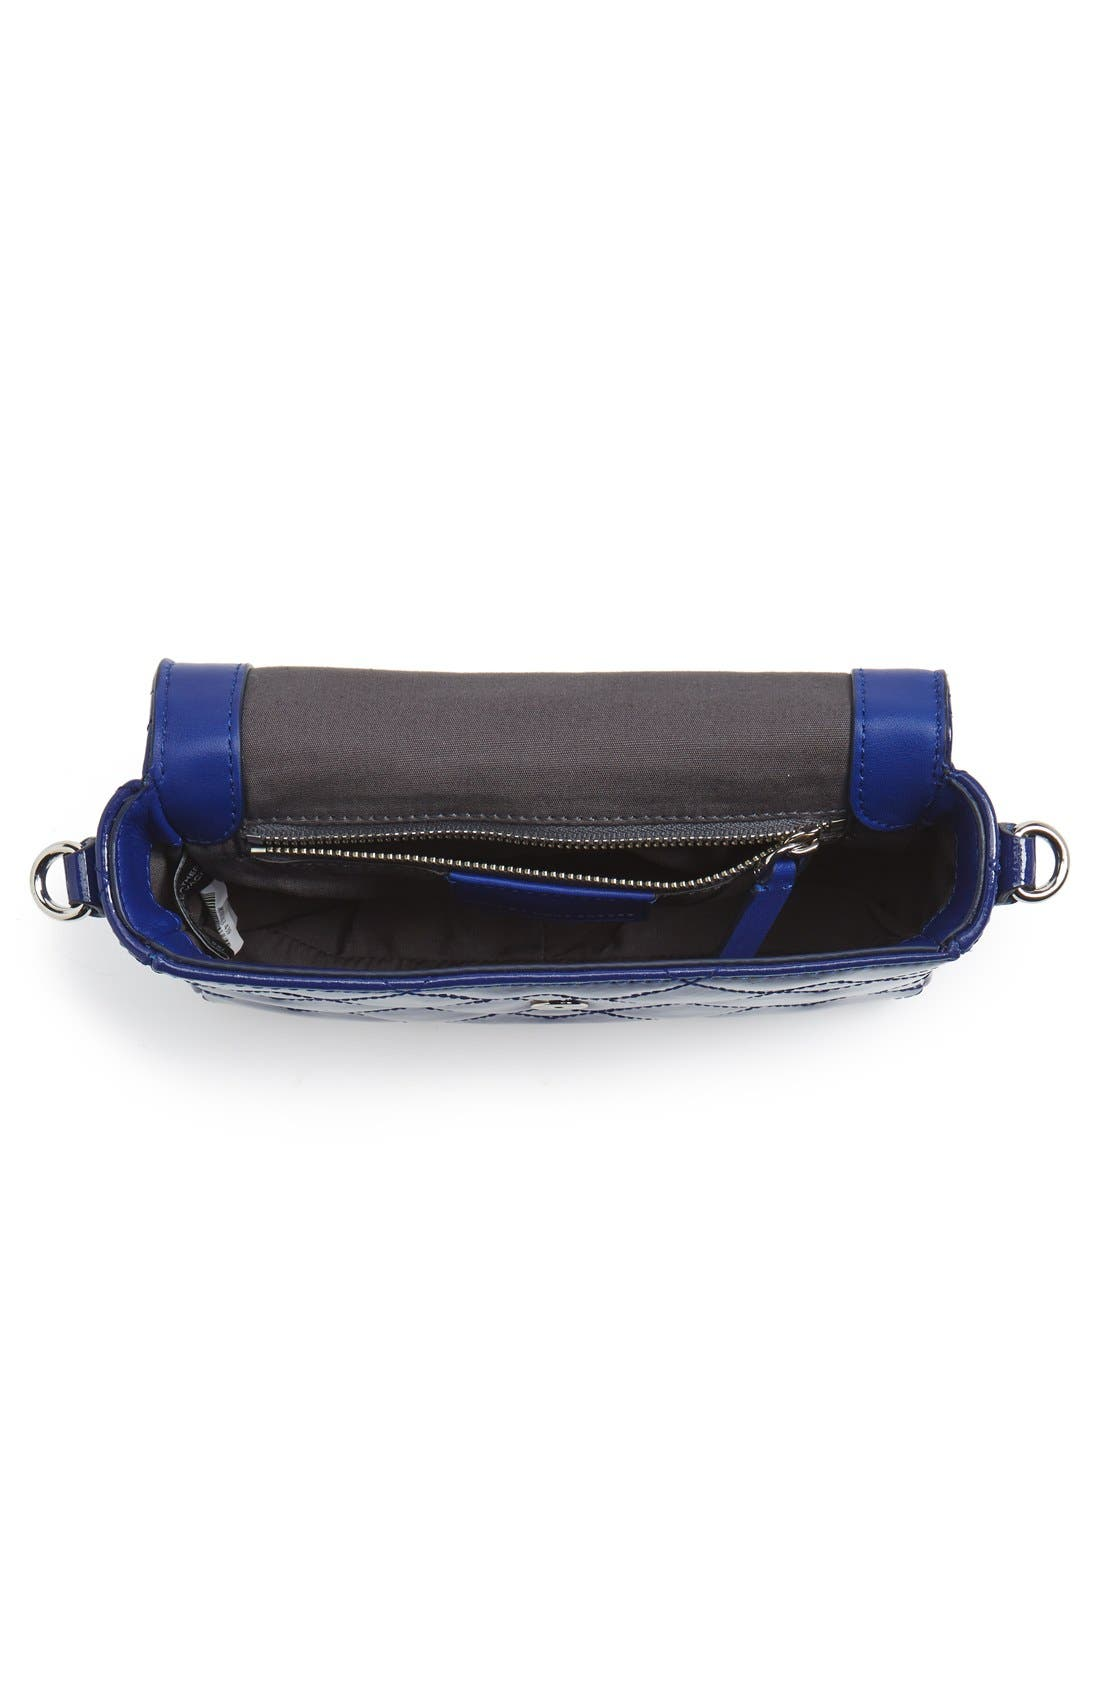 Alternate Image 3  - MARC BY MARC JACOBS 'Nifty Gifty - Julie' Patent Leather Crossbody Bag